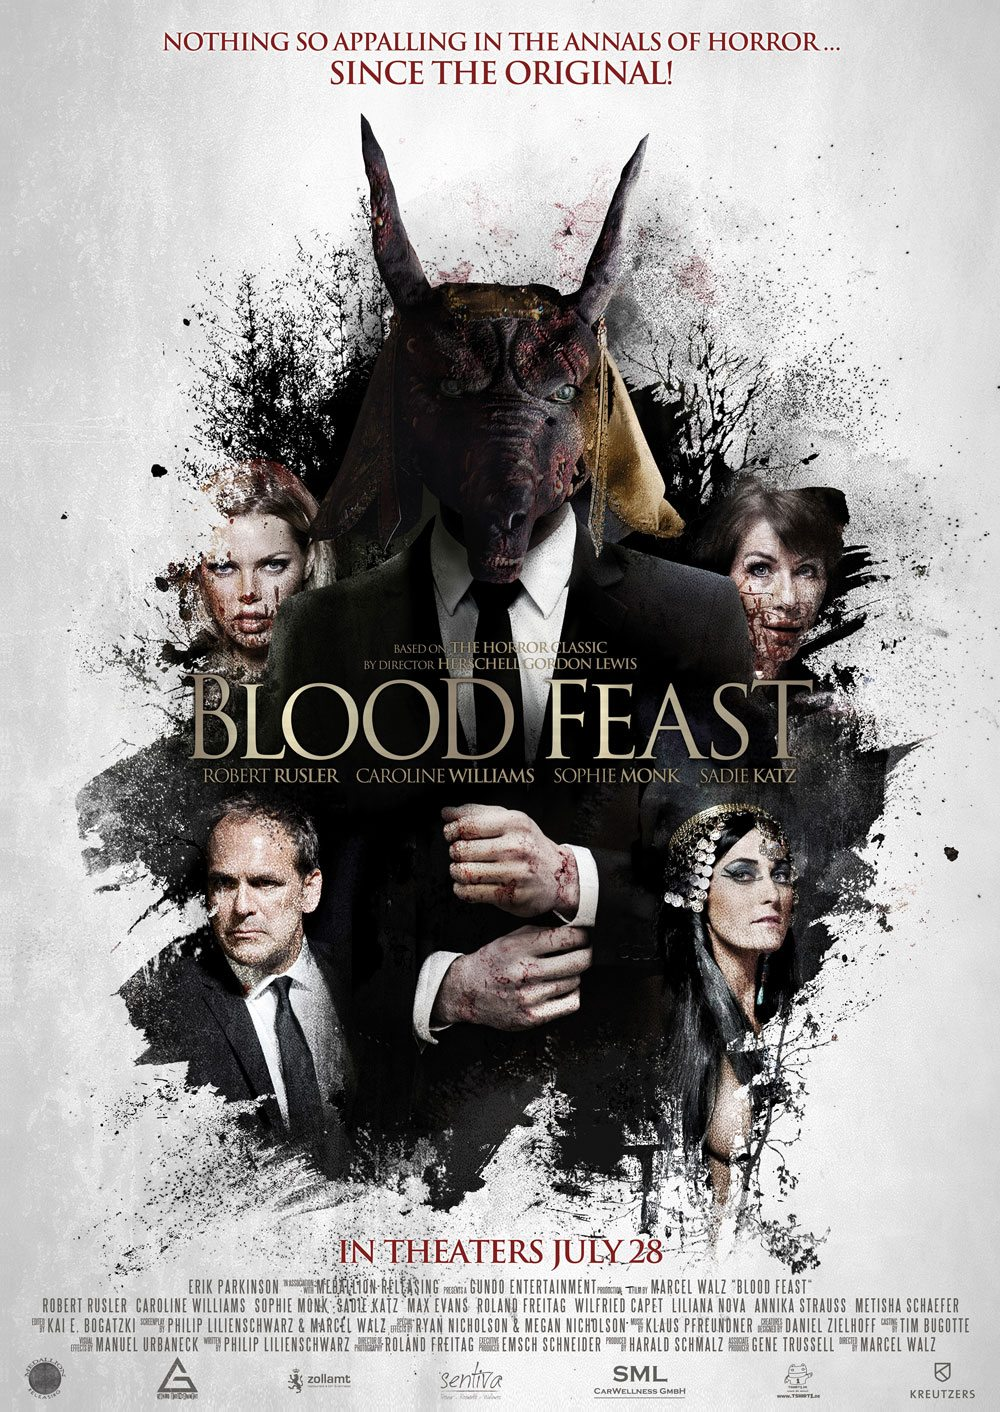 blood feast newposter - Blood Feast Remake Gets a New Rating and Date for its Theatrical Release